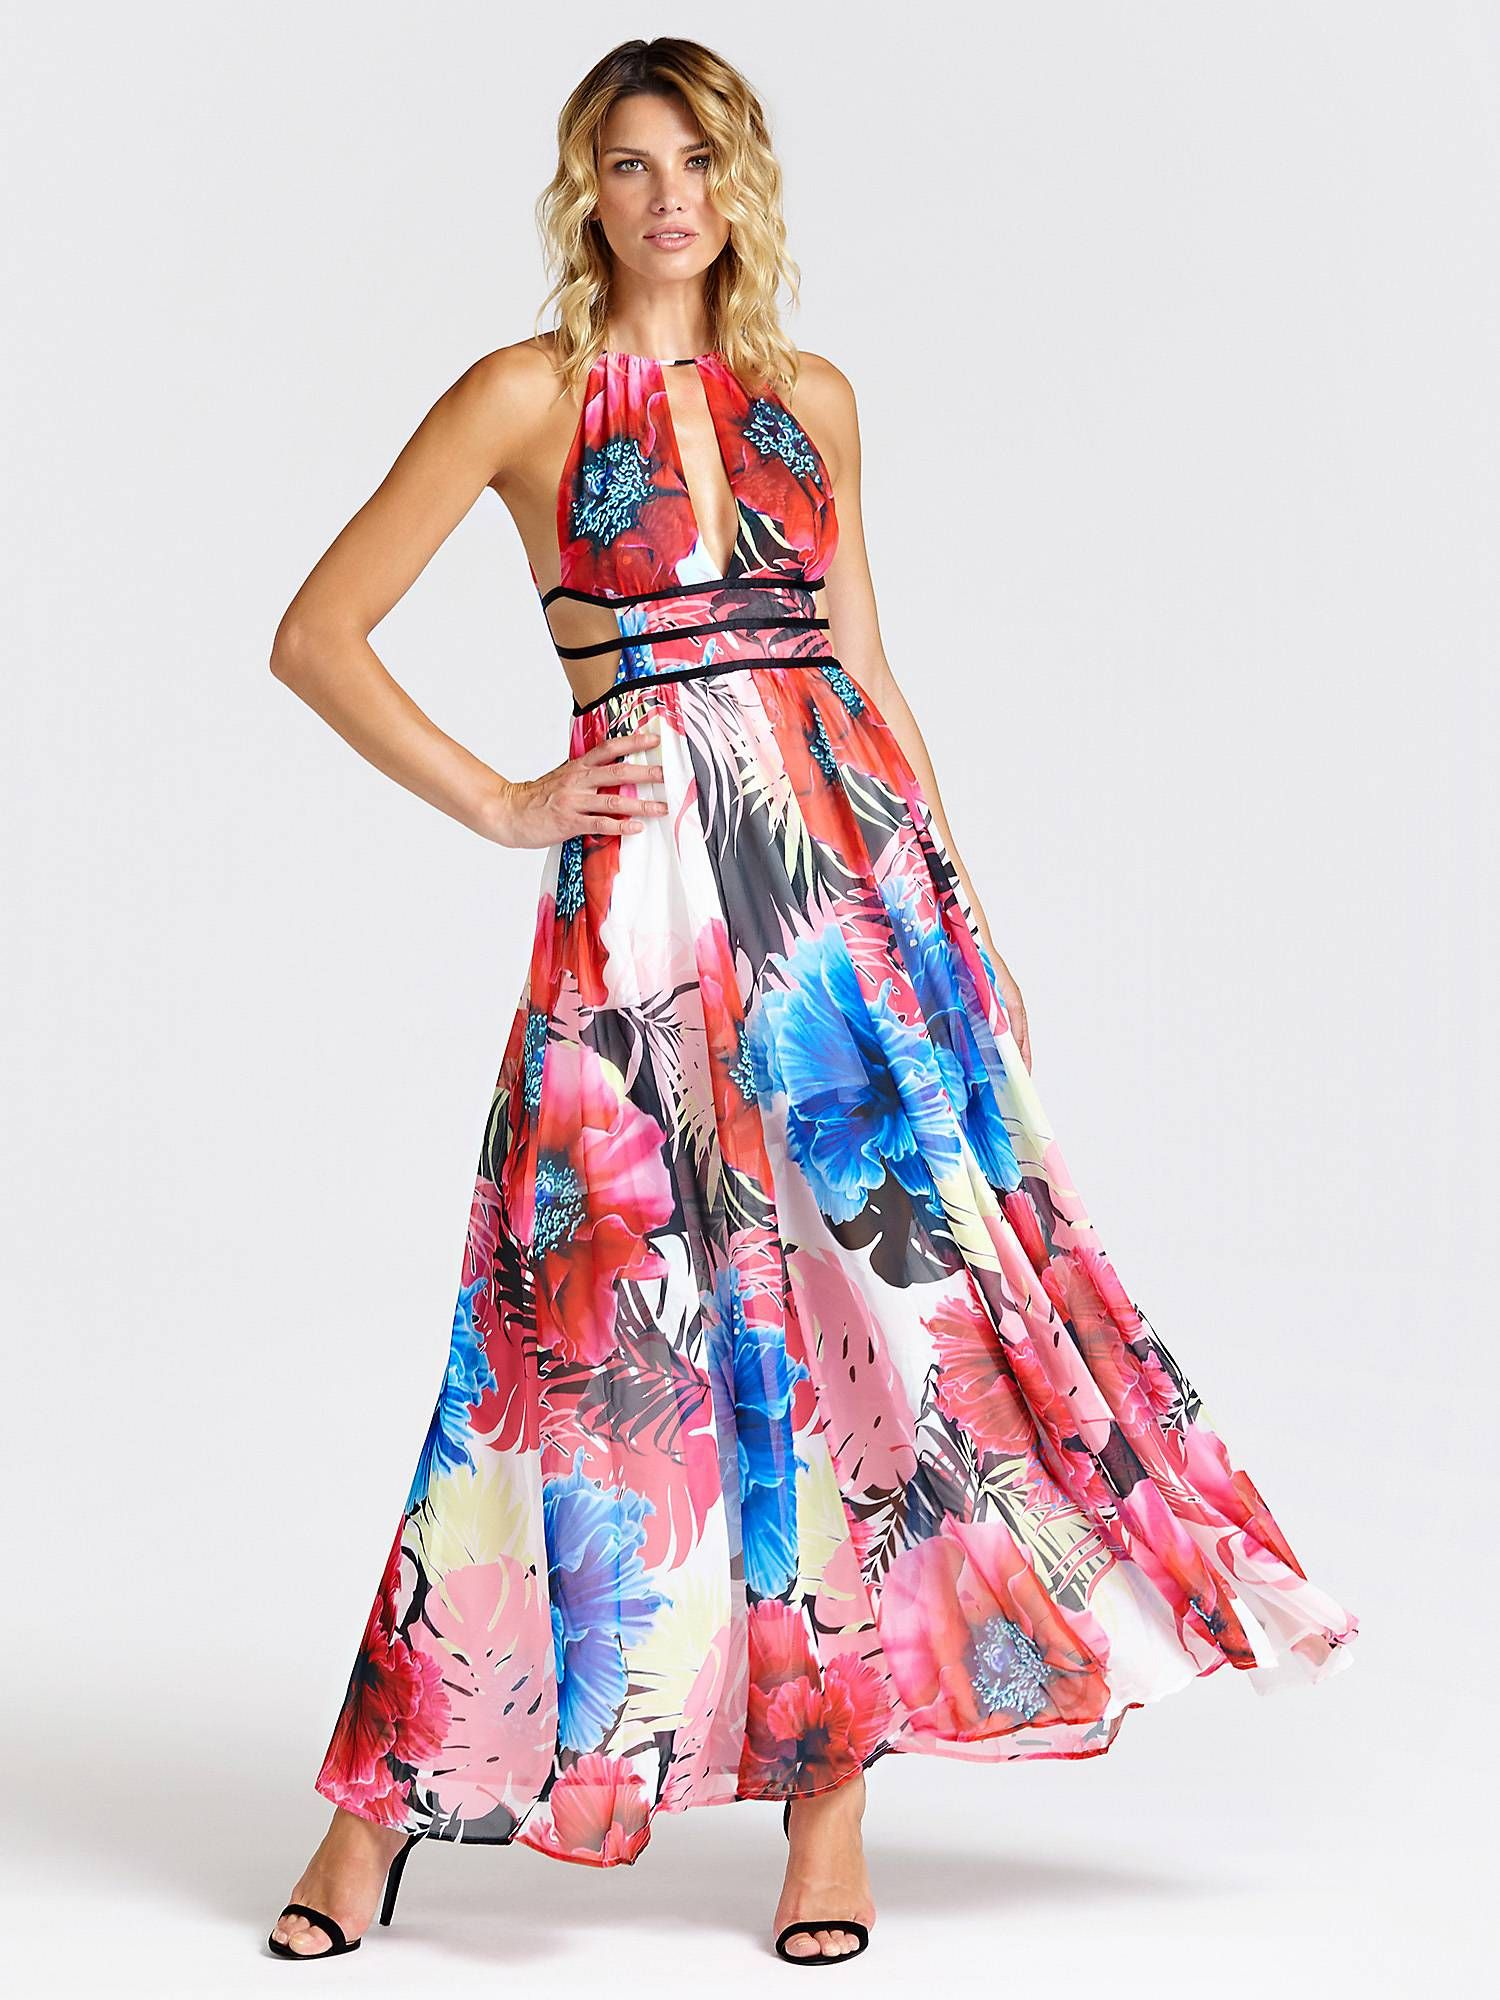 Long Floral Dress Guess Eu Guess Maxi Dress Guess Dress Floral Dresses Long